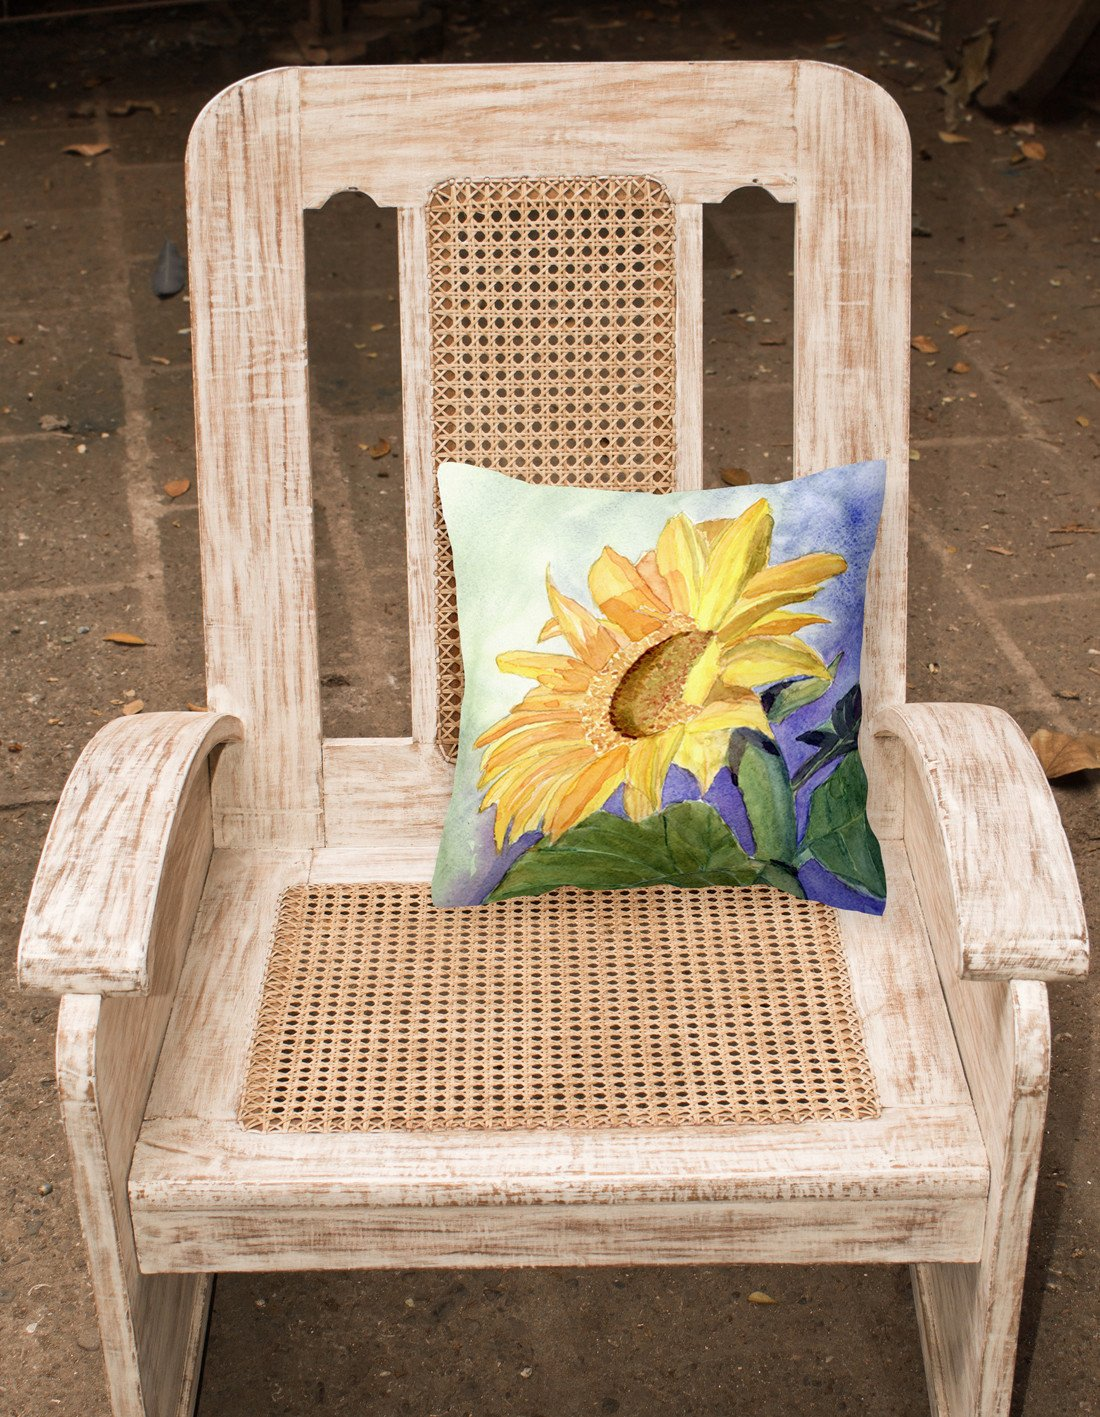 Flower - Sunflower Decorative   Canvas Fabric Pillow by Caroline's Treasures